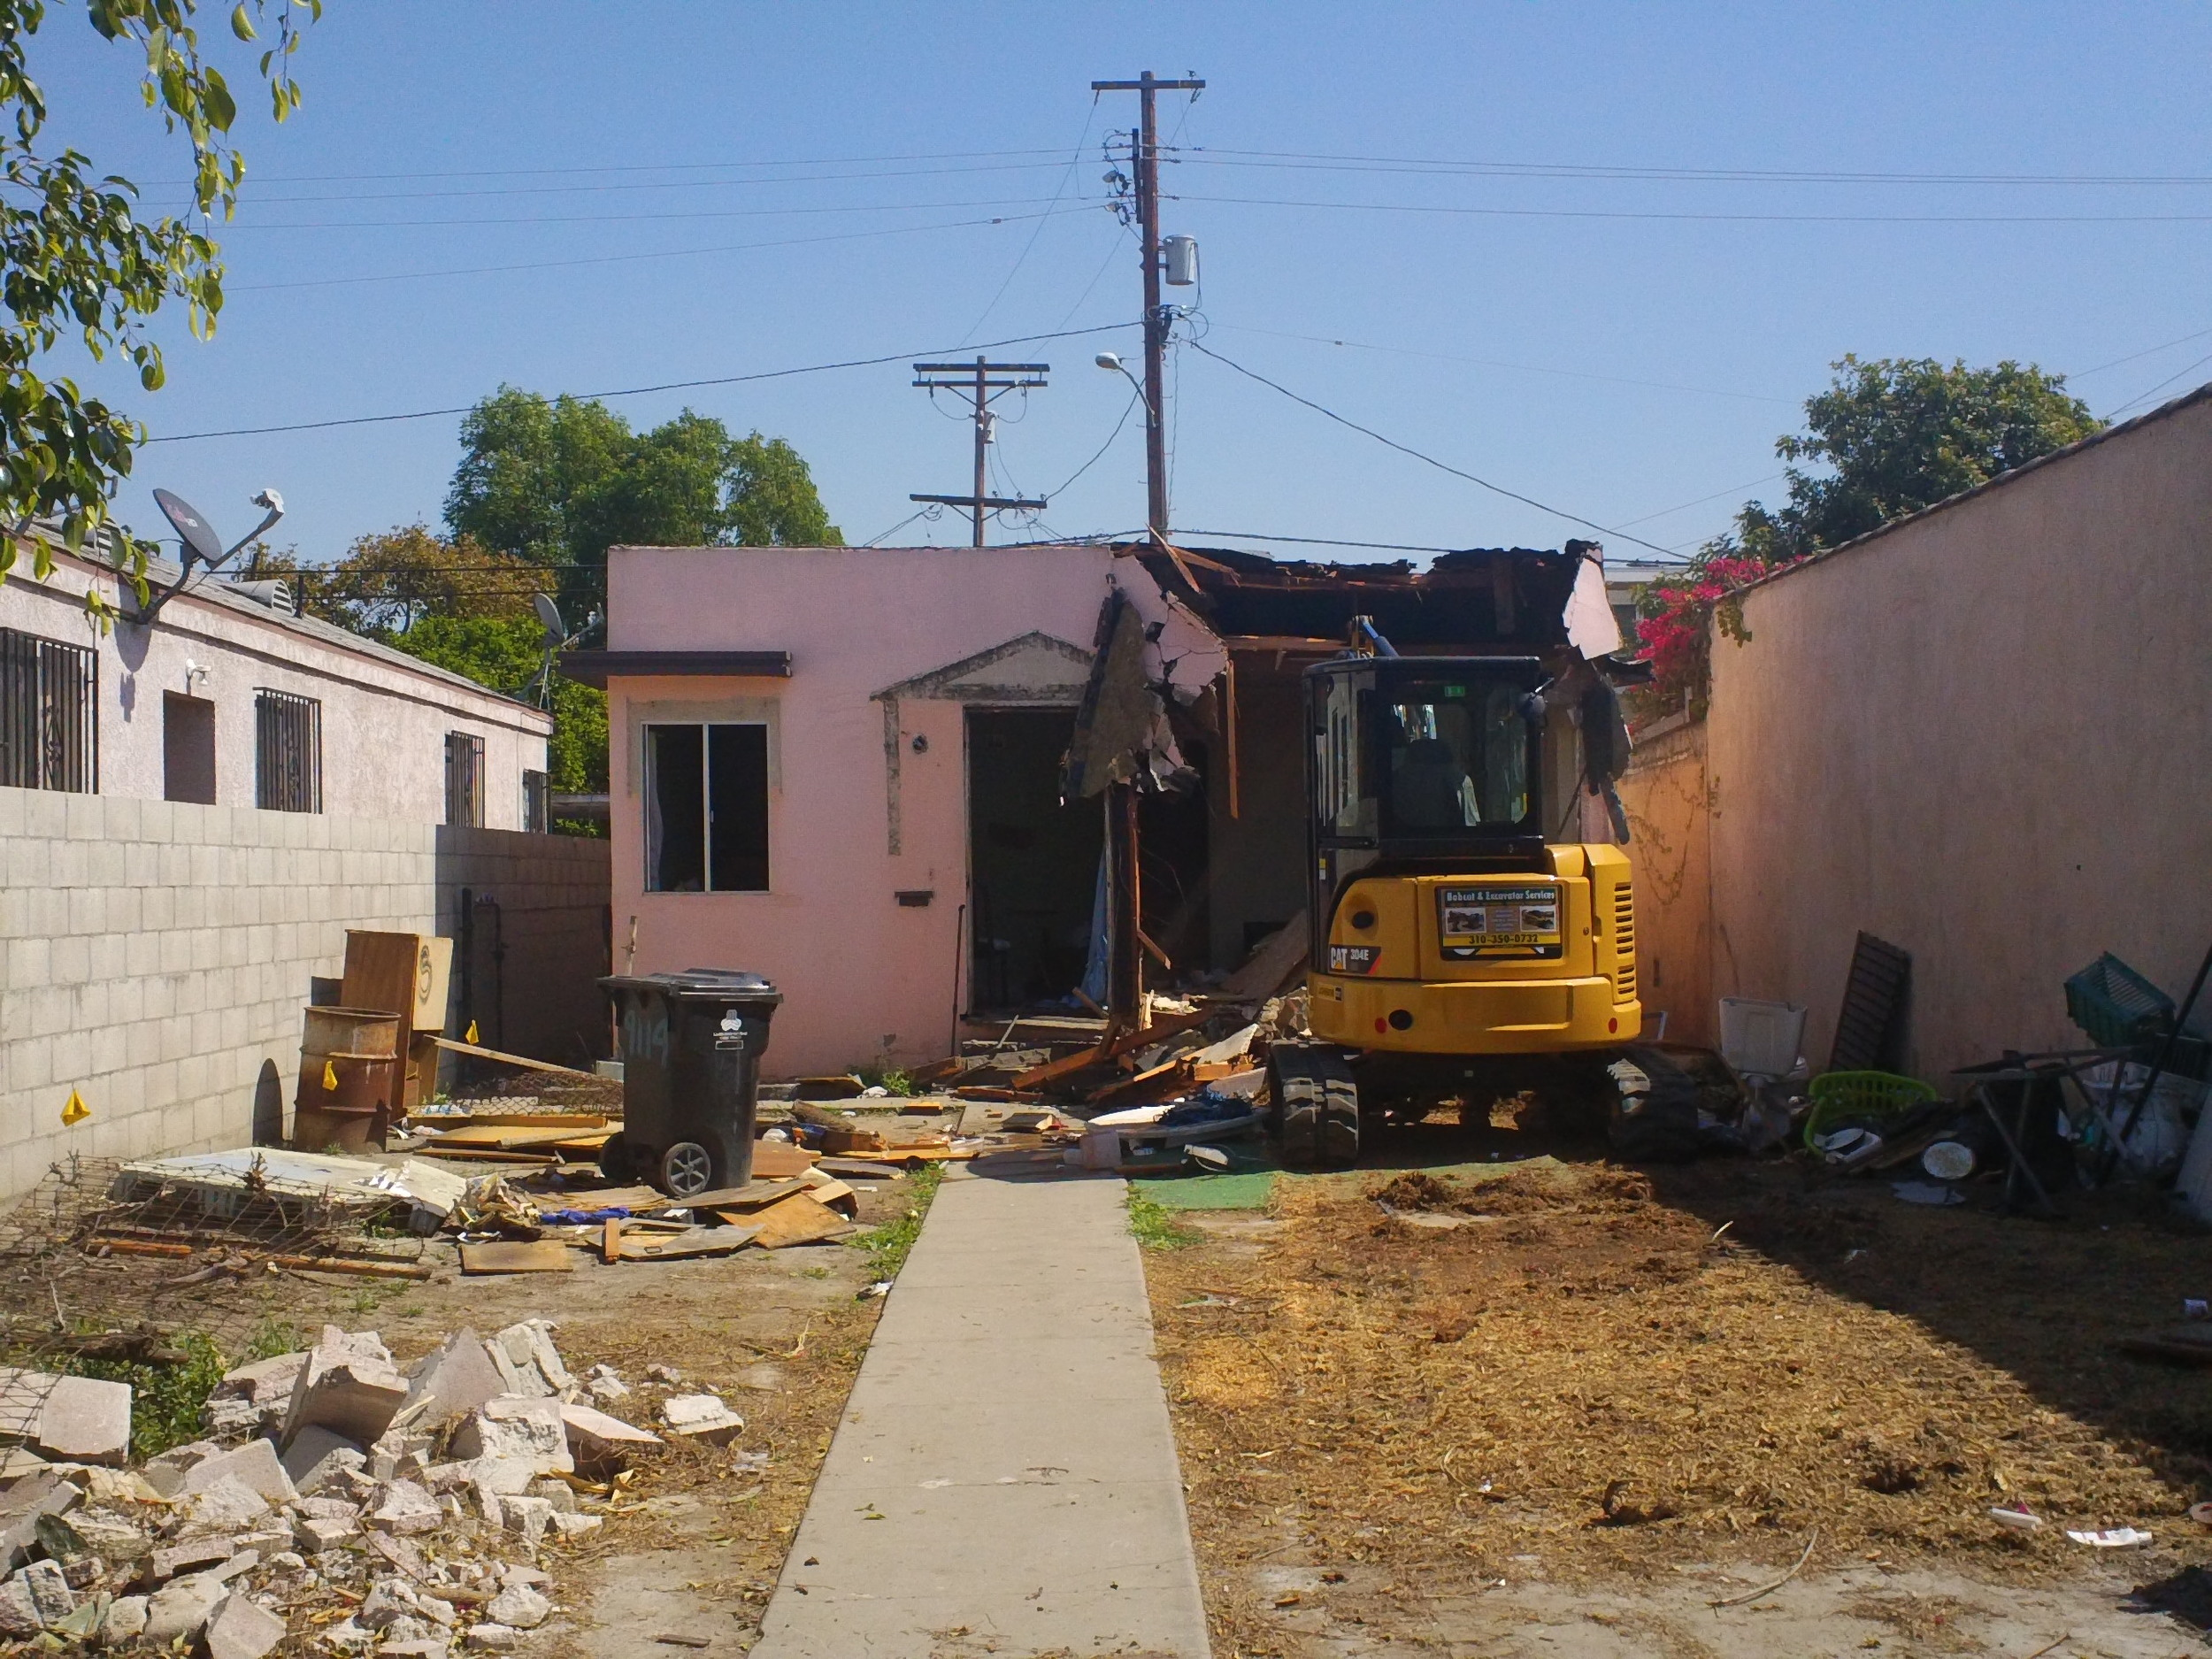 Property acquisition, demolition, and design have been completed